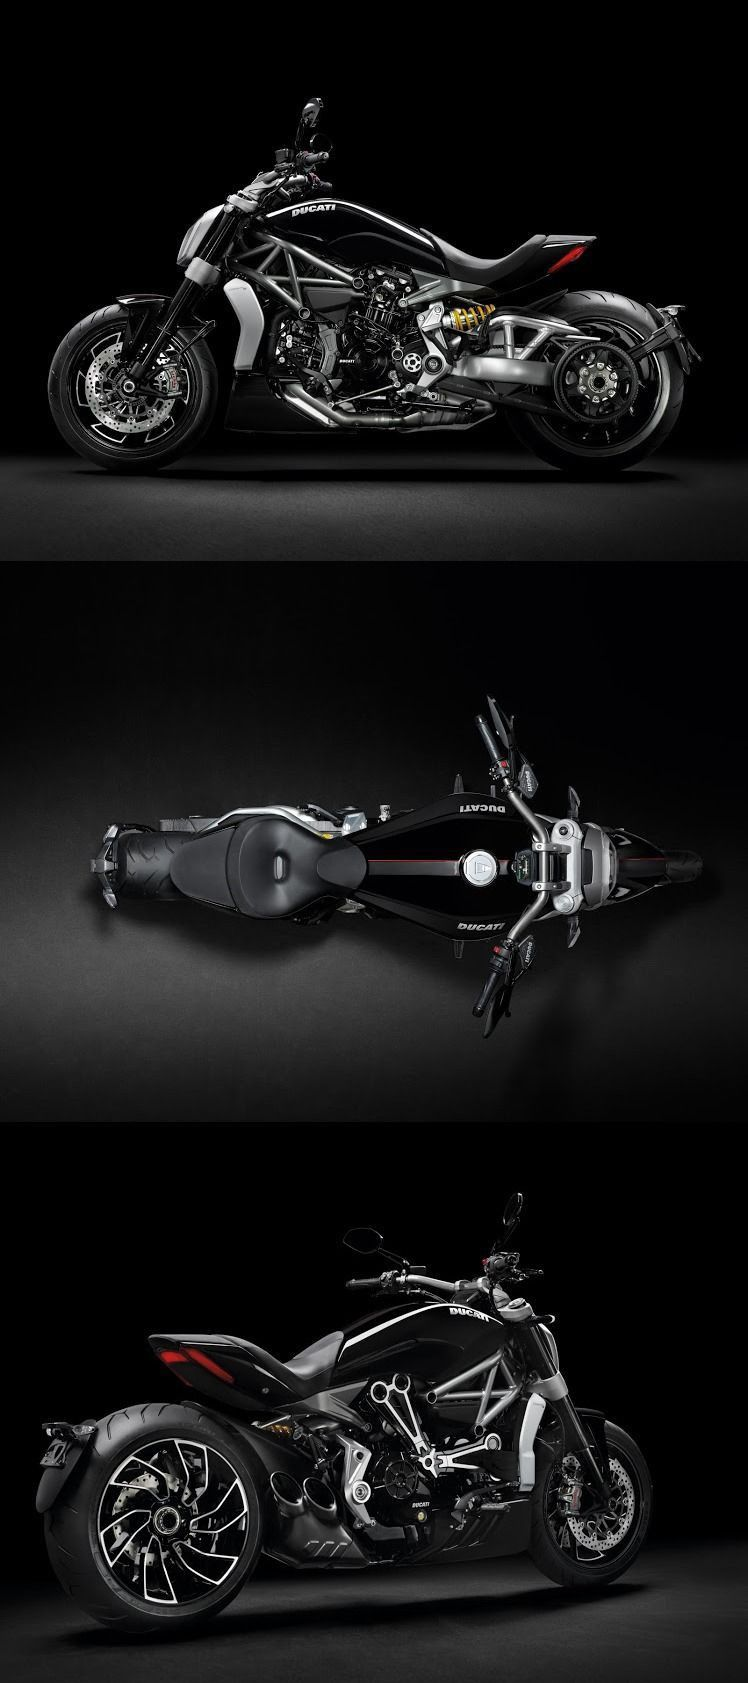 Xdiavel Gets Superlight Battery and Race Filter! Ducati